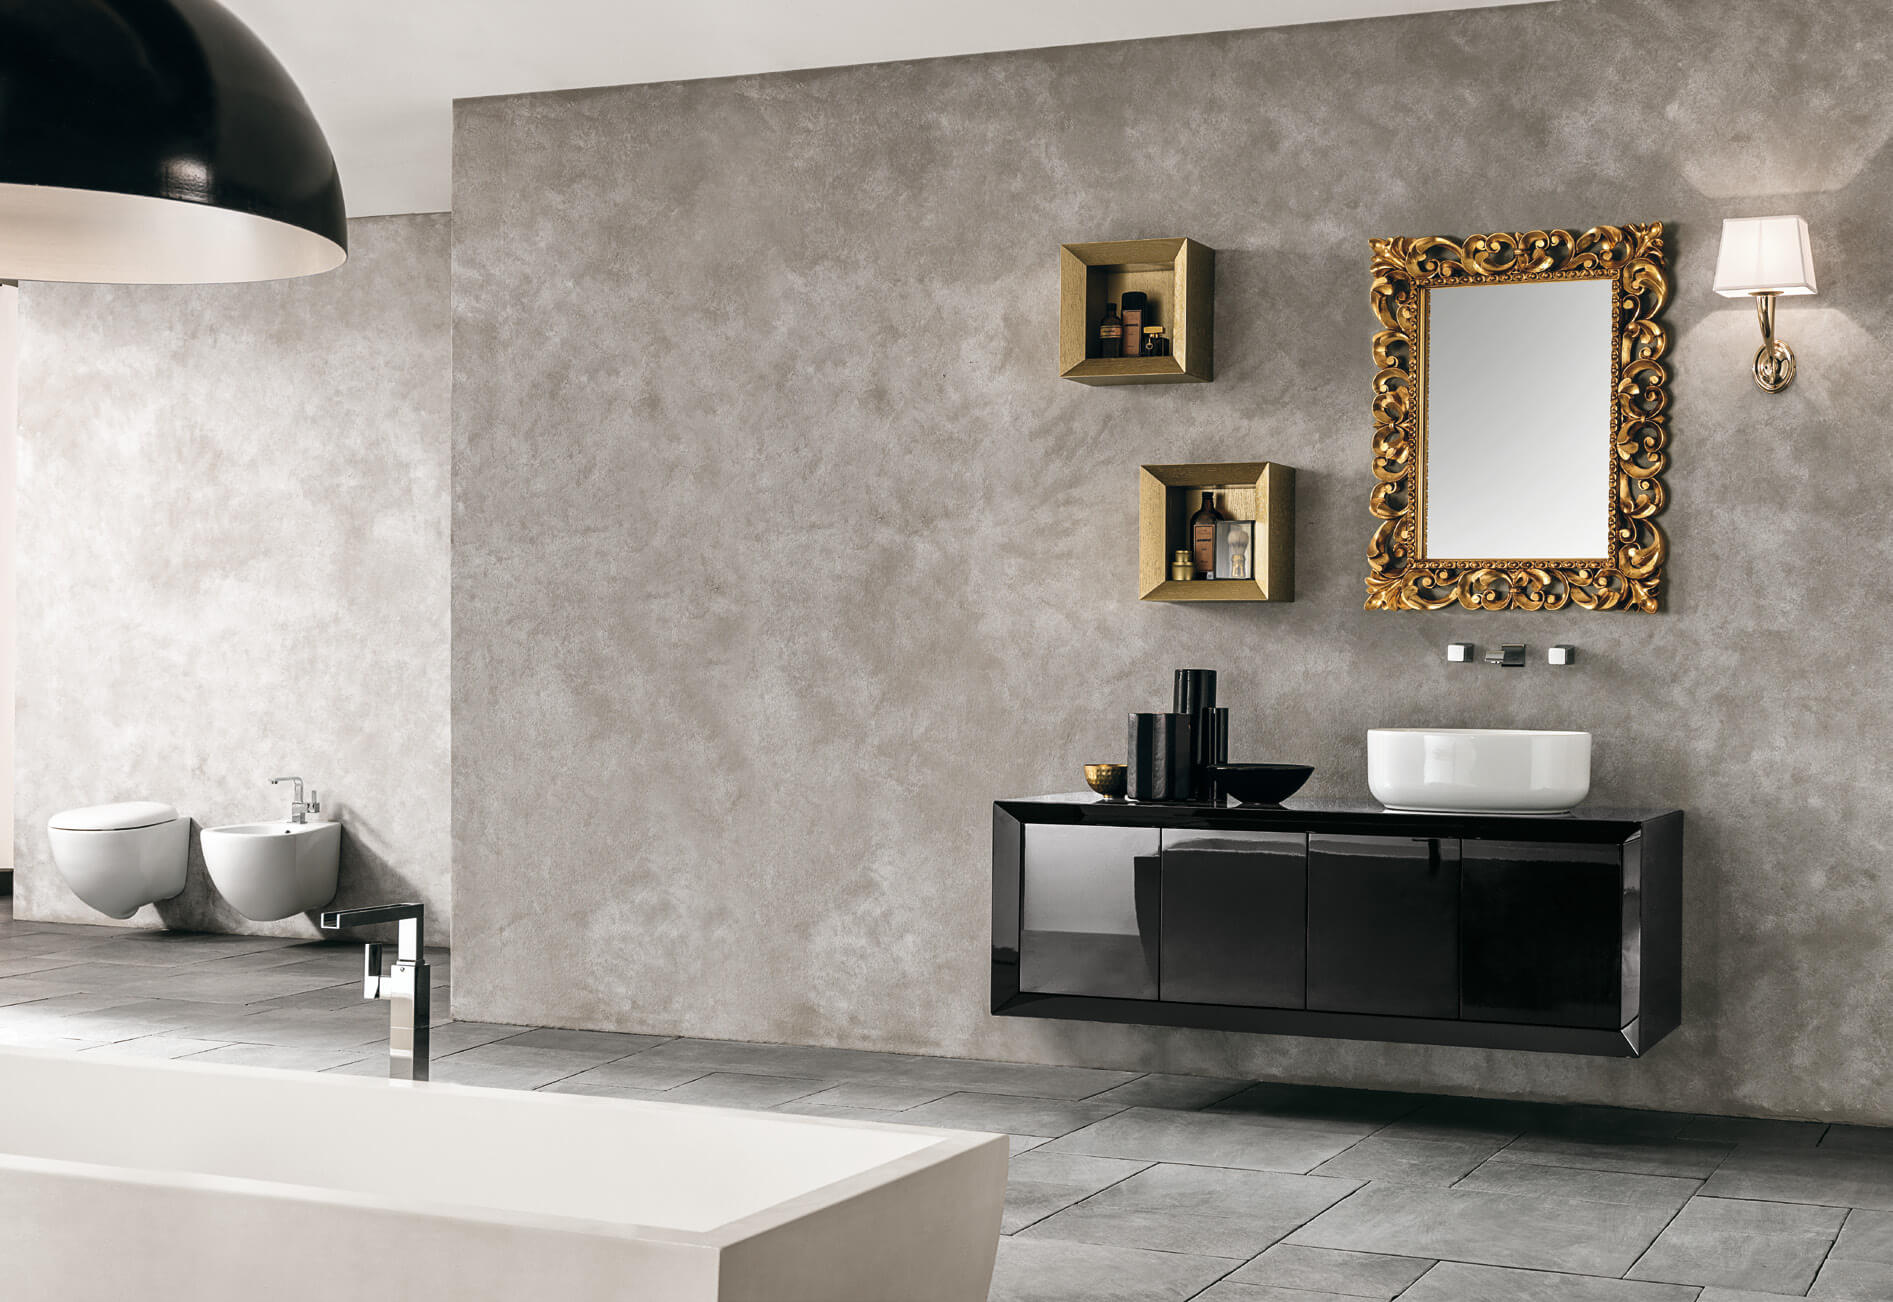 https://www.mobiliacolori.it/wp-content/uploads/2018/08/bagno-moderno-Tosca.jpg